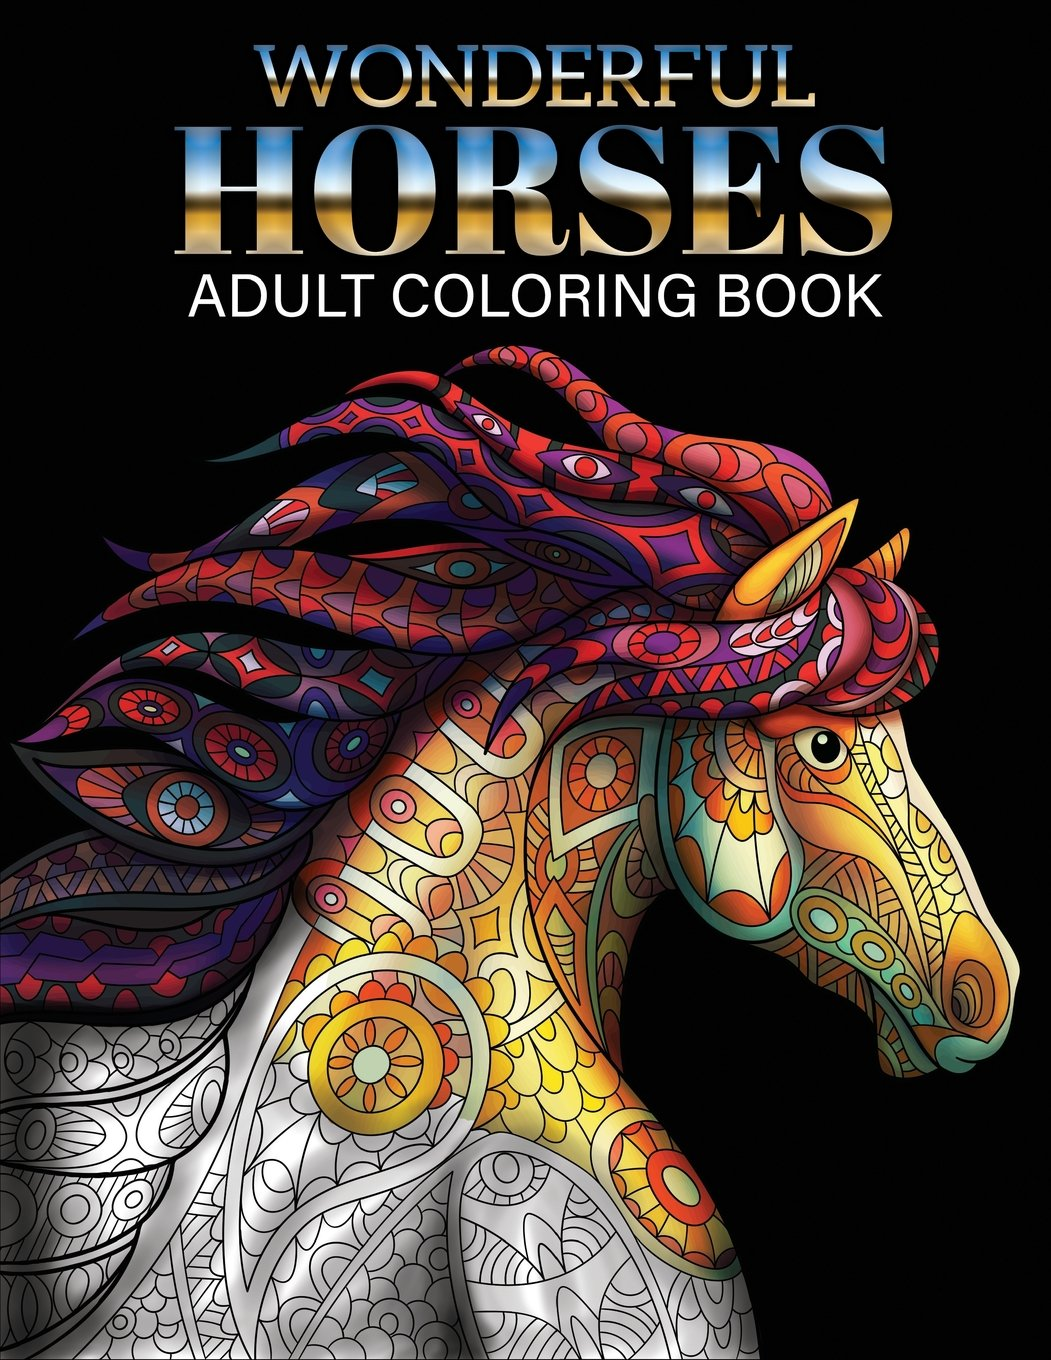 Space Coloring Book for Adults   Free adult coloring pages, Animal ...   1360x1051